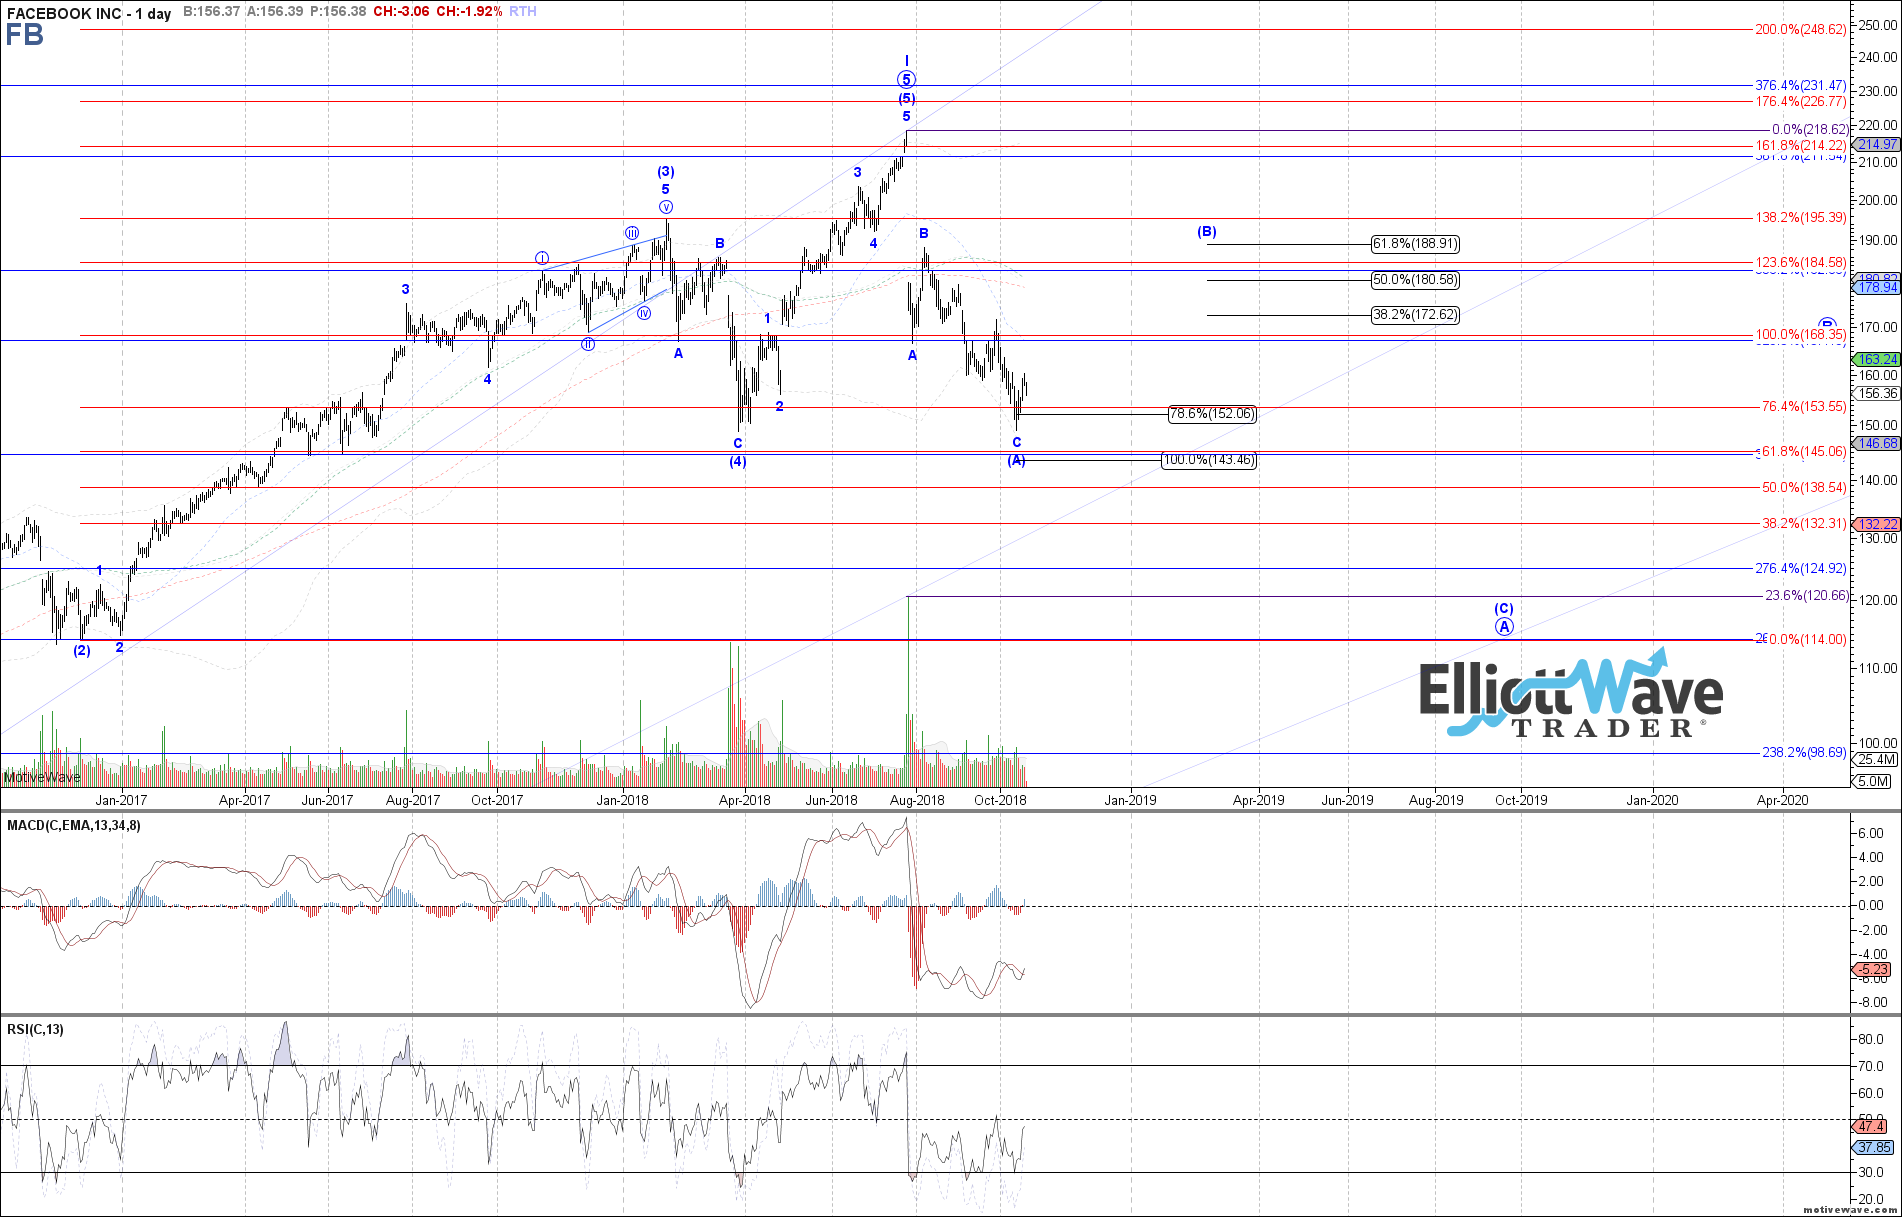 FB - Primary Analysis - Oct-18 0819 AM (1 day)